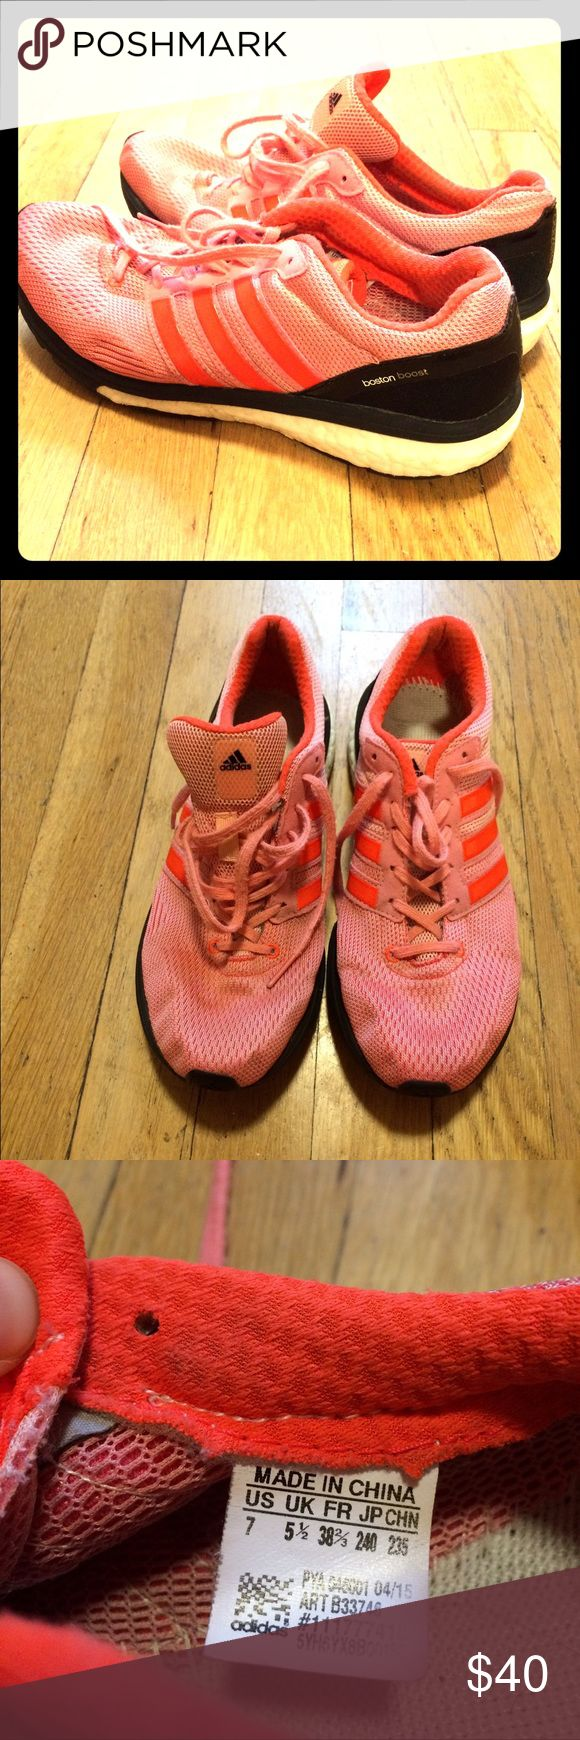 Adidas Boost Running Shoes Adidas Boost Running Shoes. Used. Good condition. Adidas Shoes Athletic Shoes